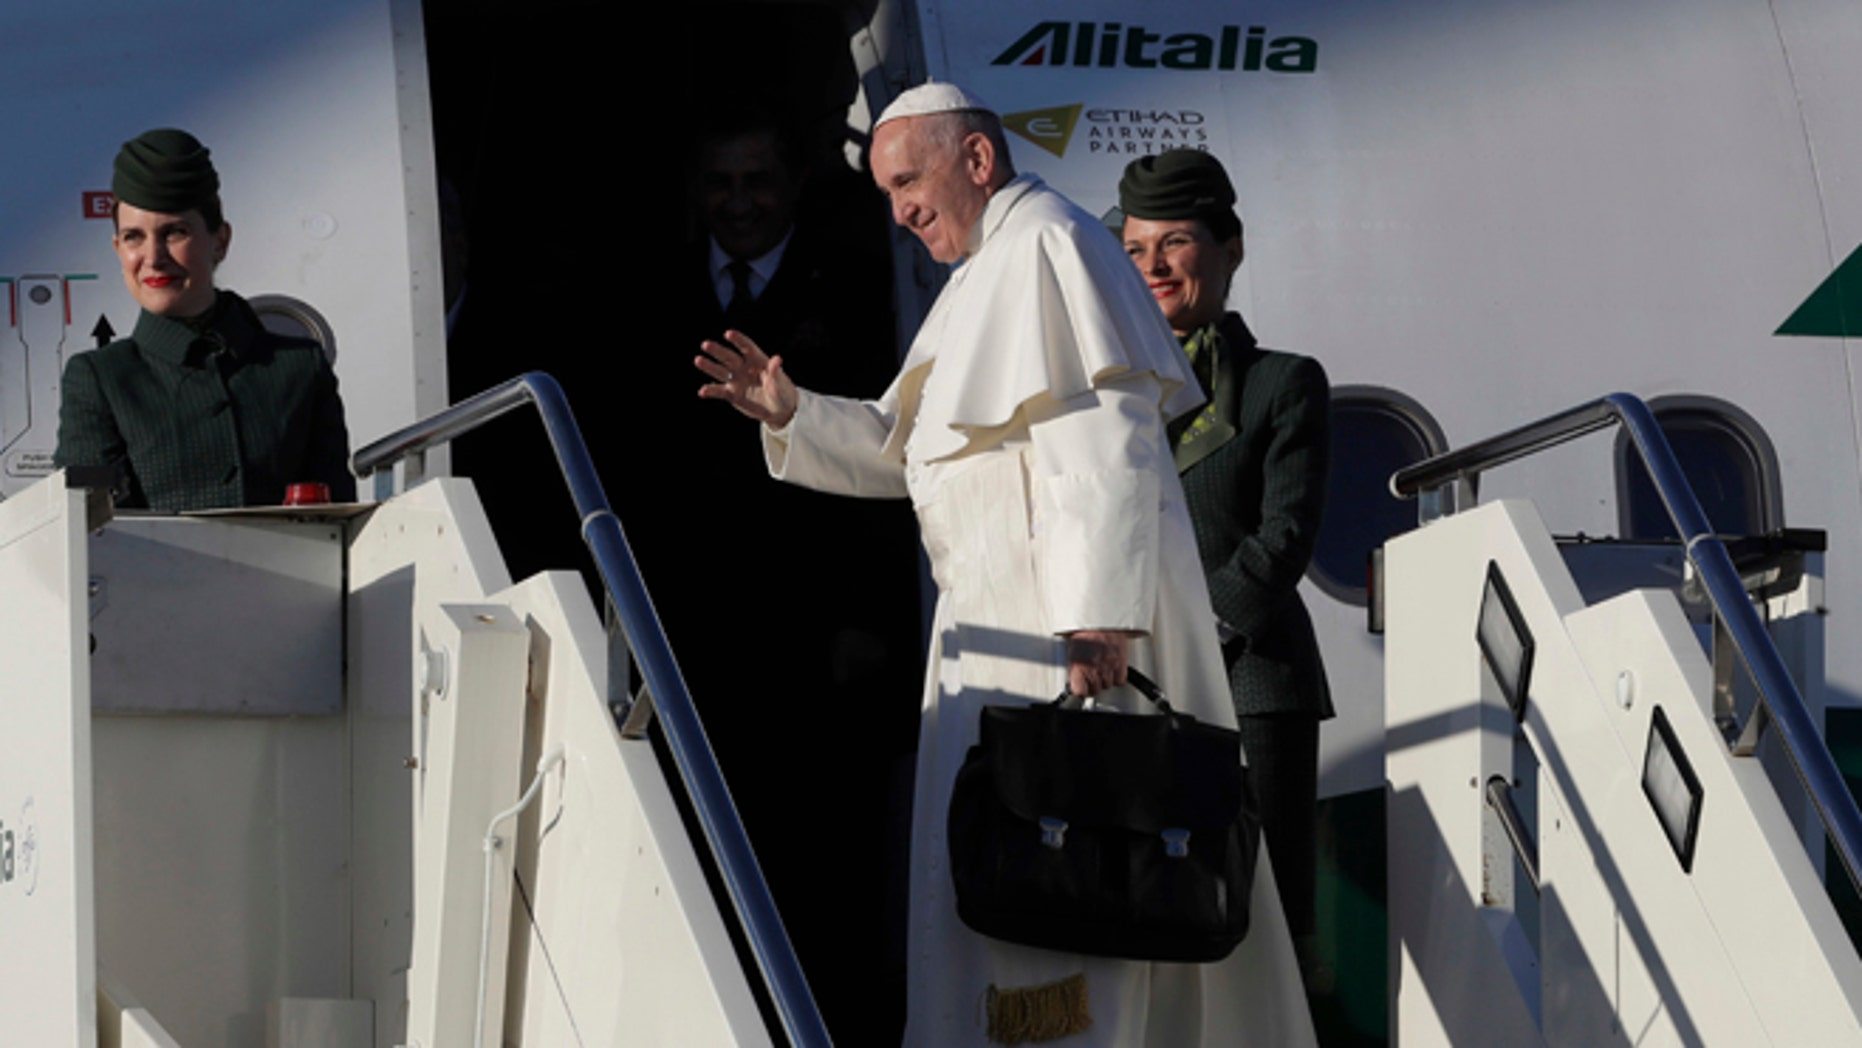 Pope Francis boards an airplane at Rome's Fiumicino international airport, on his way to Malmo, Sweden, Monday, Oct. 31, 2016. Pope Francis is heading to secular Sweden to mark the 500th anniversary of the Protestant Reformation. (AP Photo/Alessandra Tarantino)